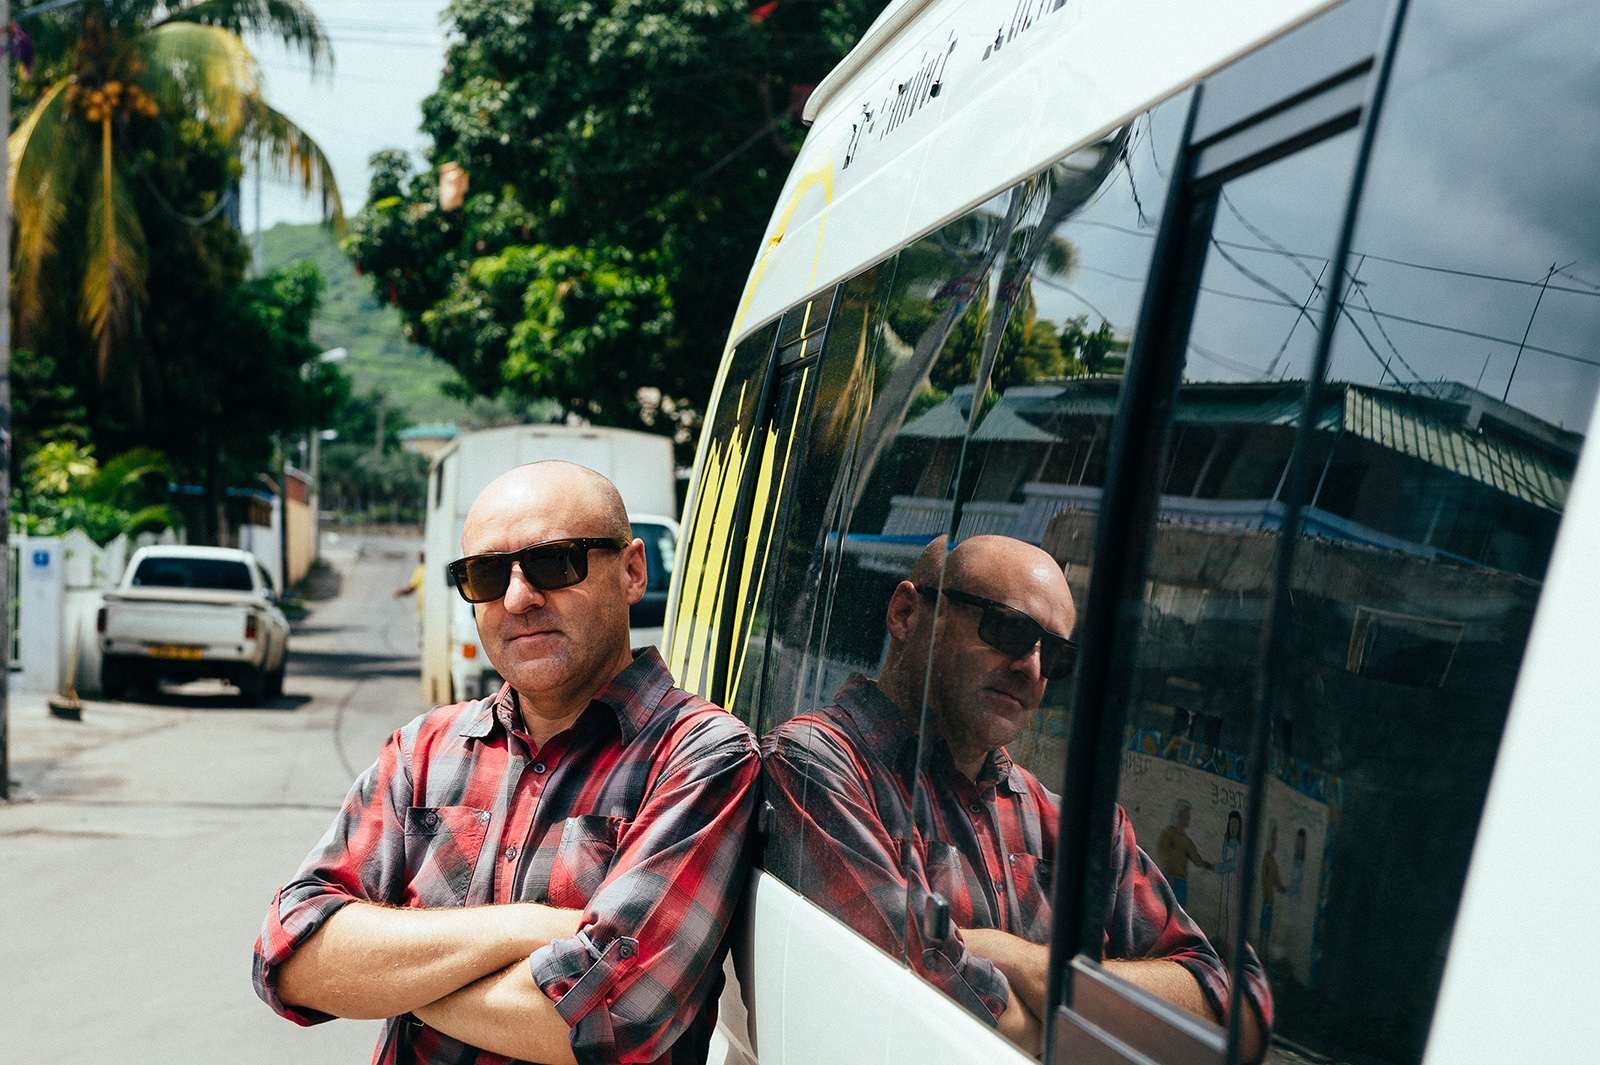 Man by bus